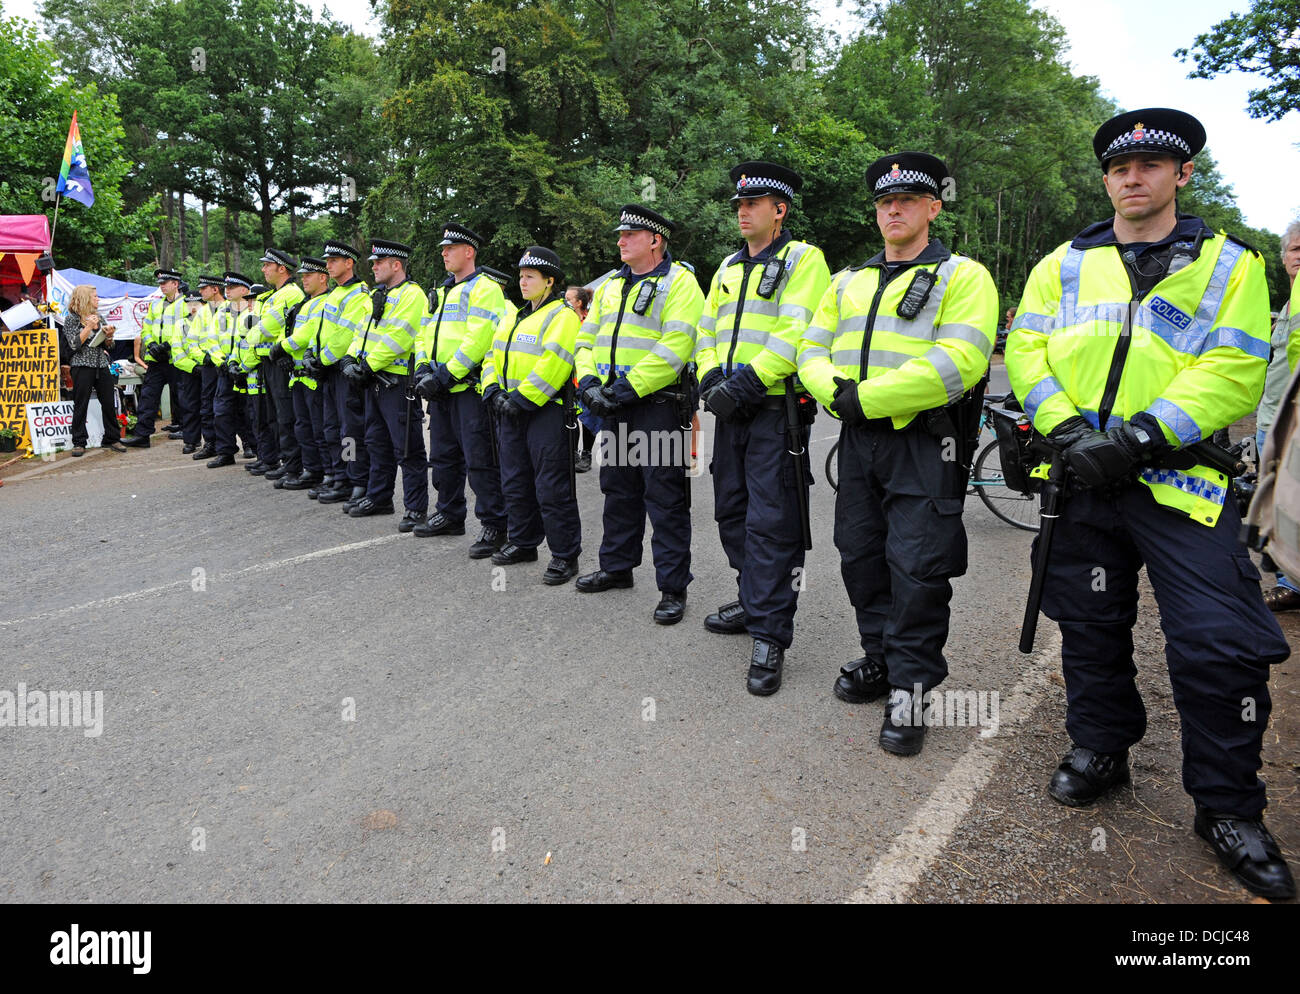 A line of police ready to stop anti fracking protesters who have set up camp next to the Cuadrilla site at Balcombe - Stock Image